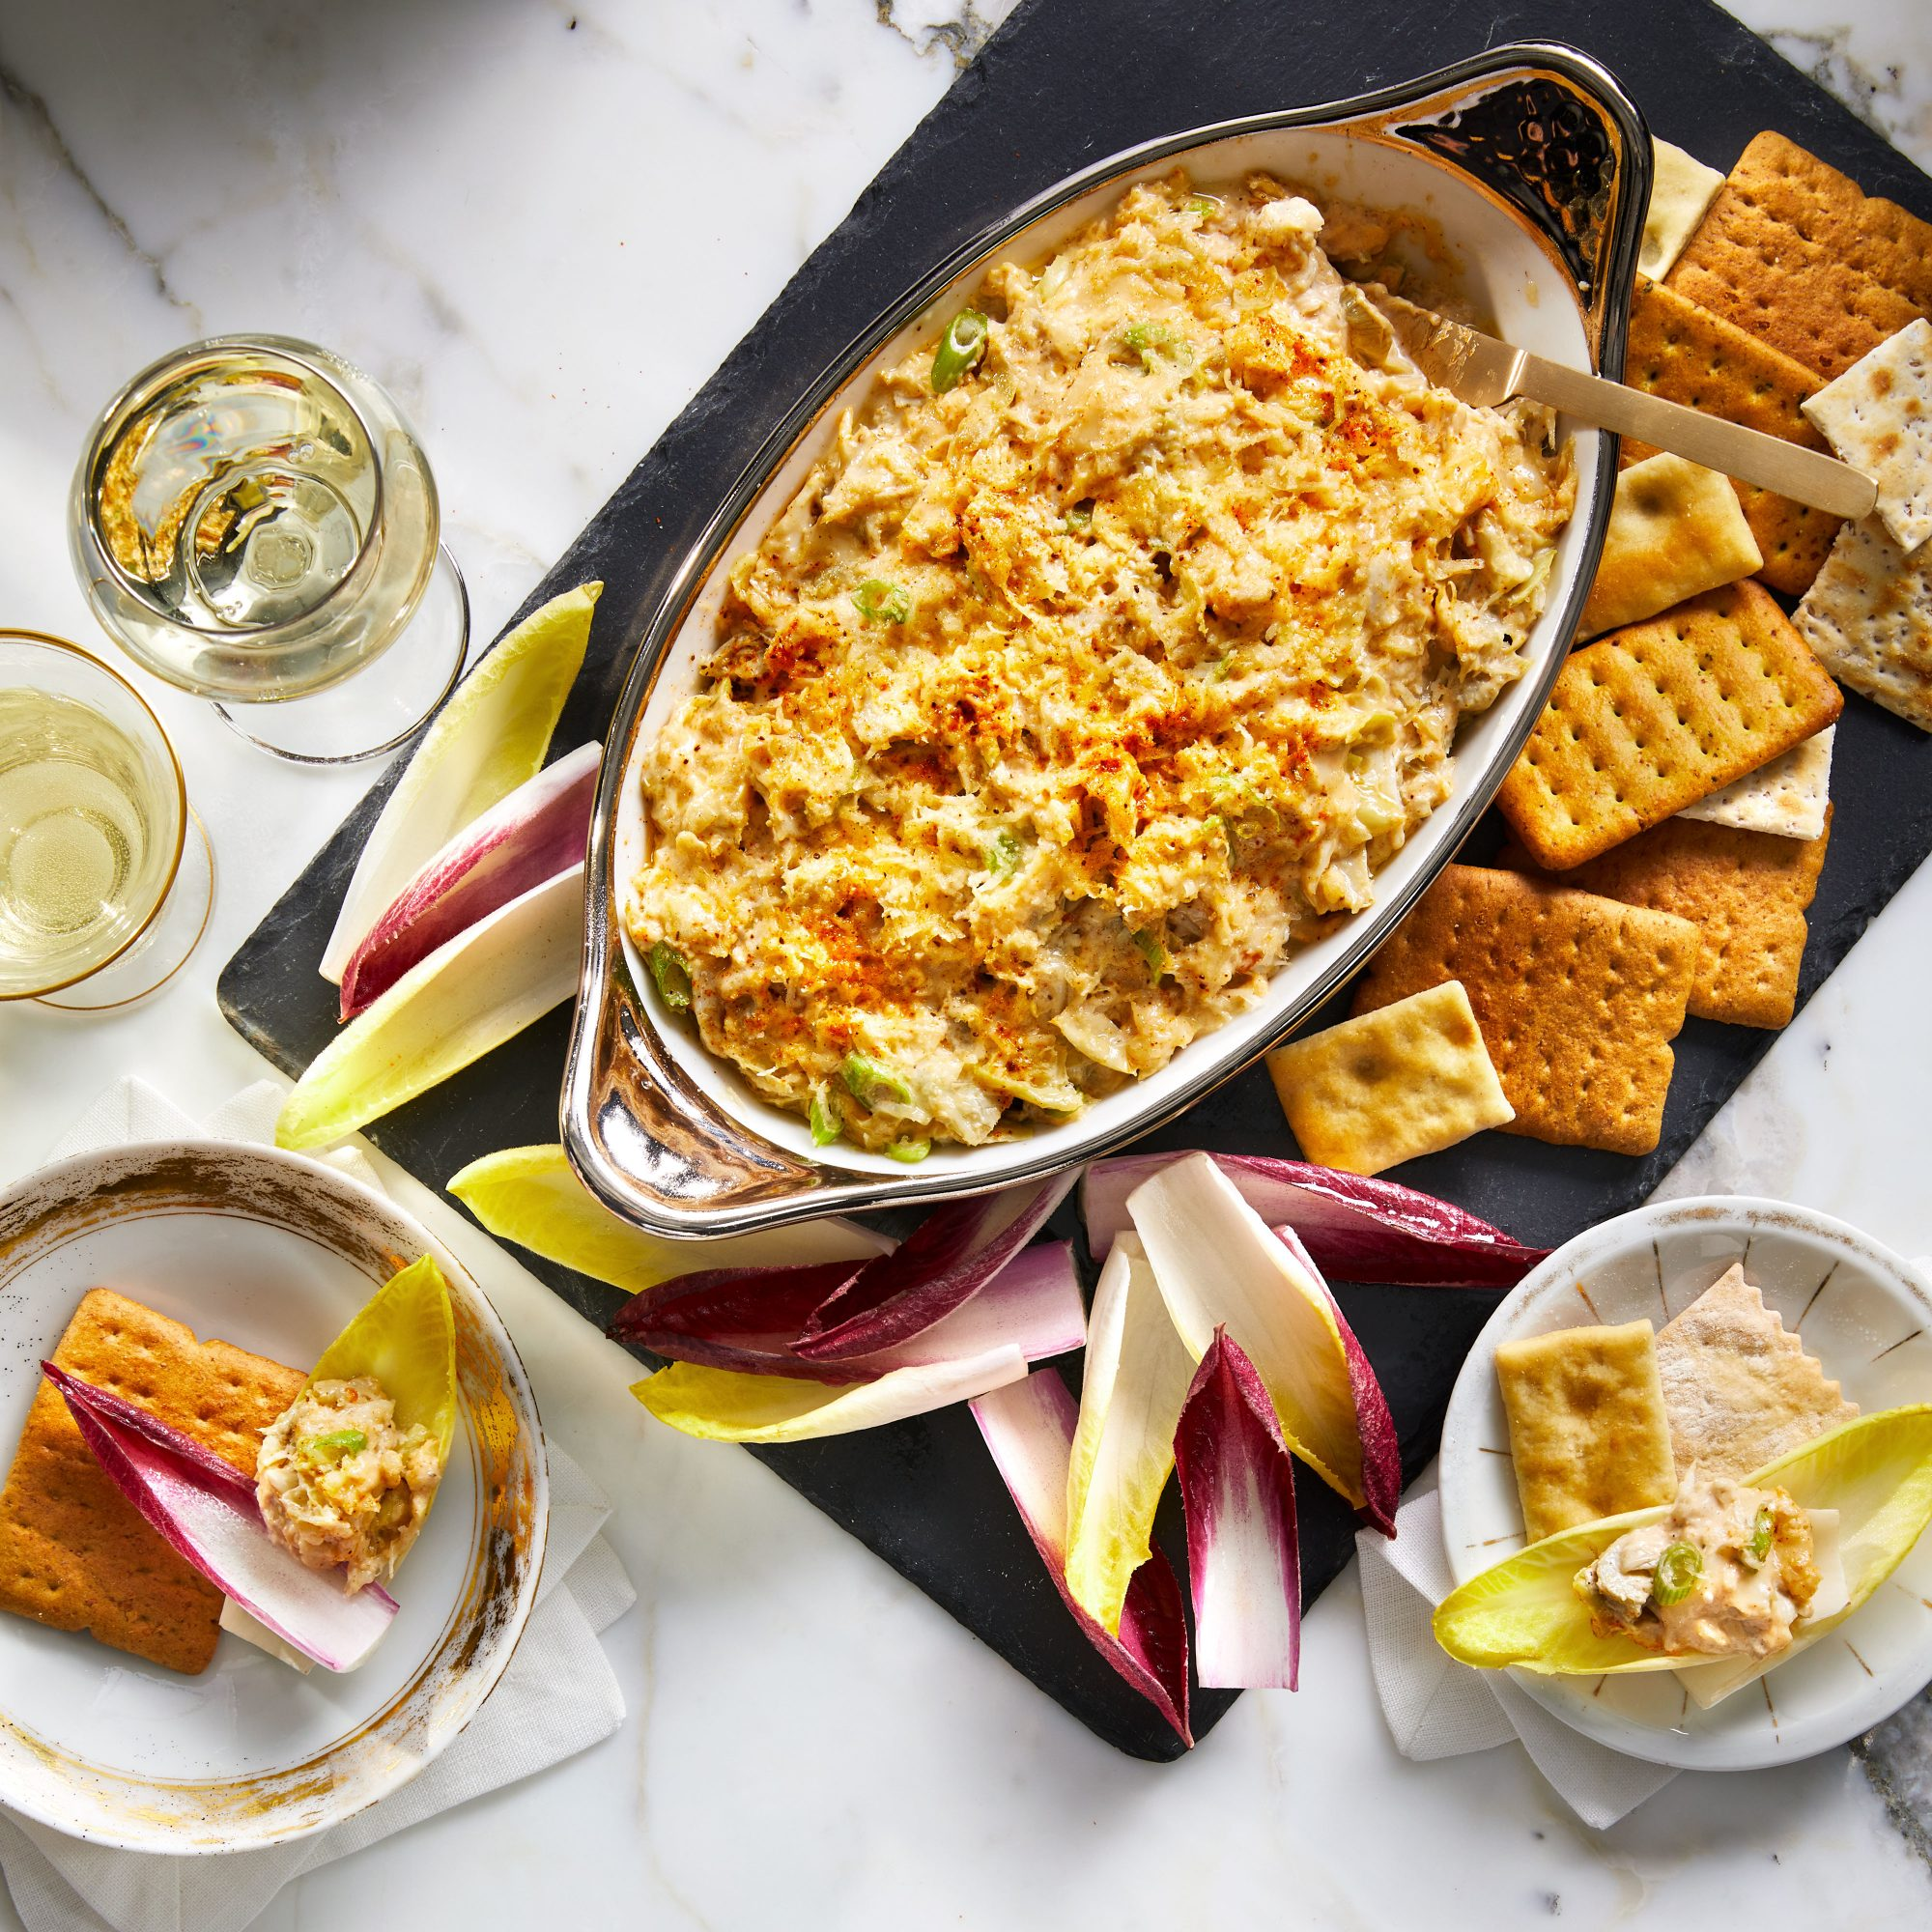 Hot Crab-and-Artichoke Dip